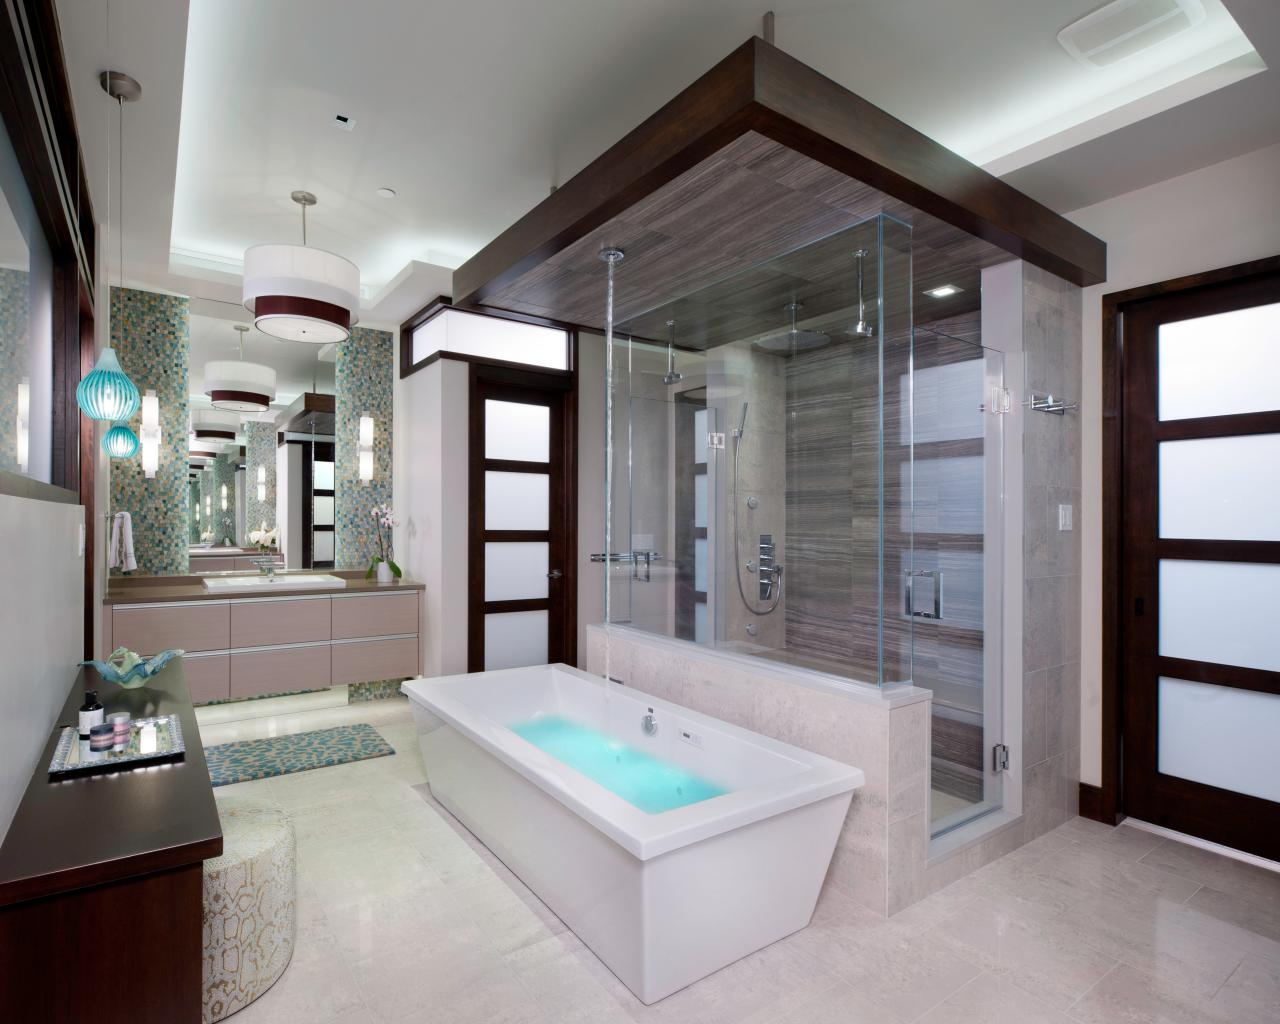 Award winning bathroom designs 2016 - Freestanding Tubs 6 Photos